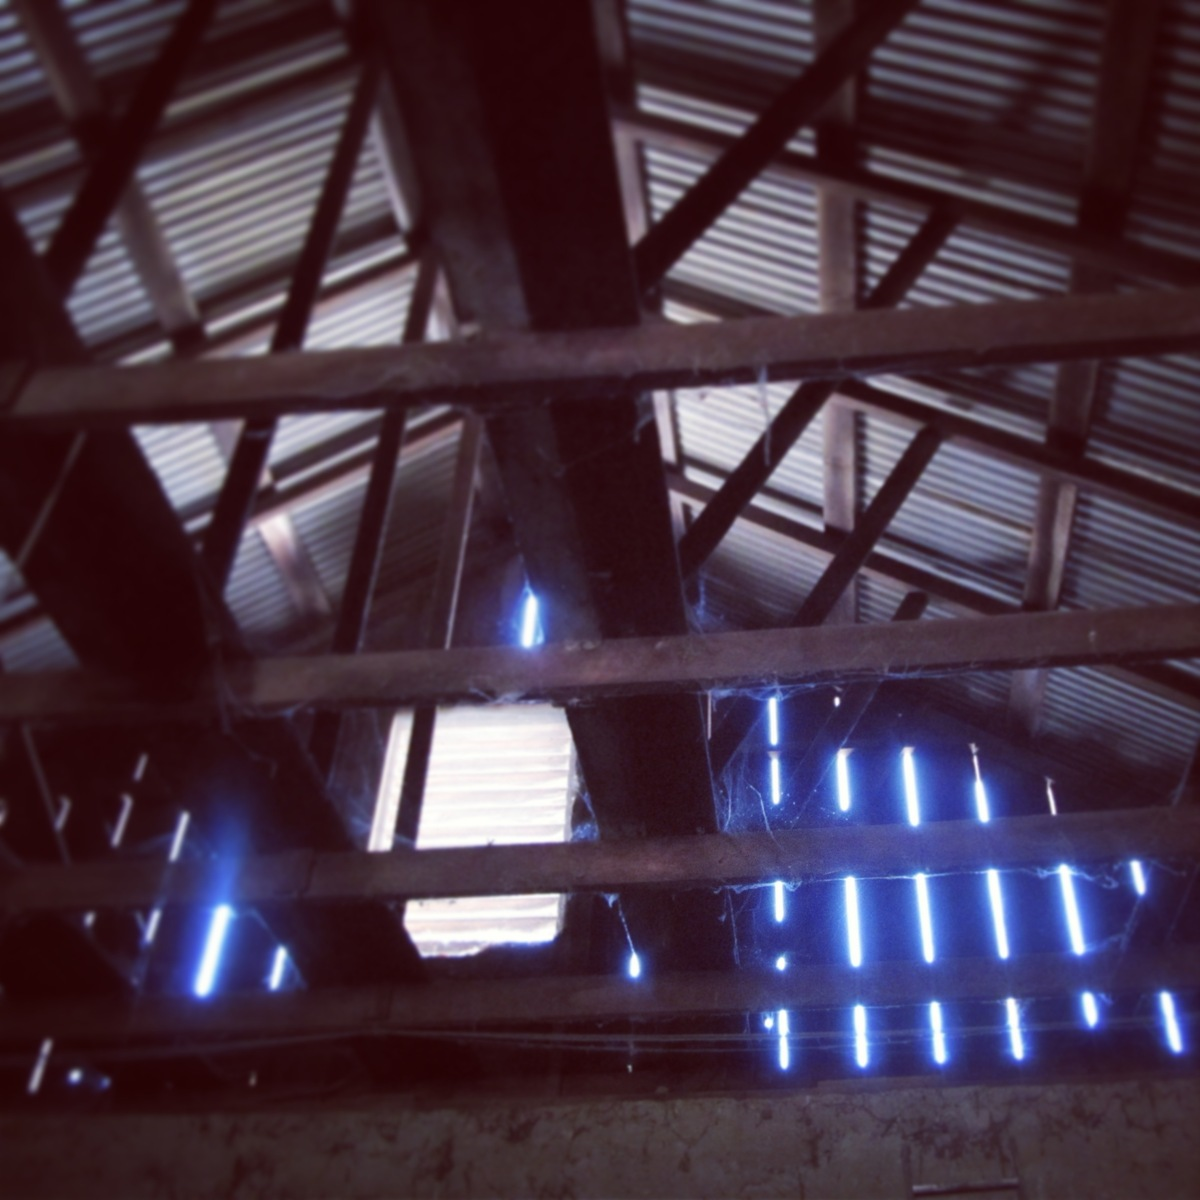 barn: roof structure